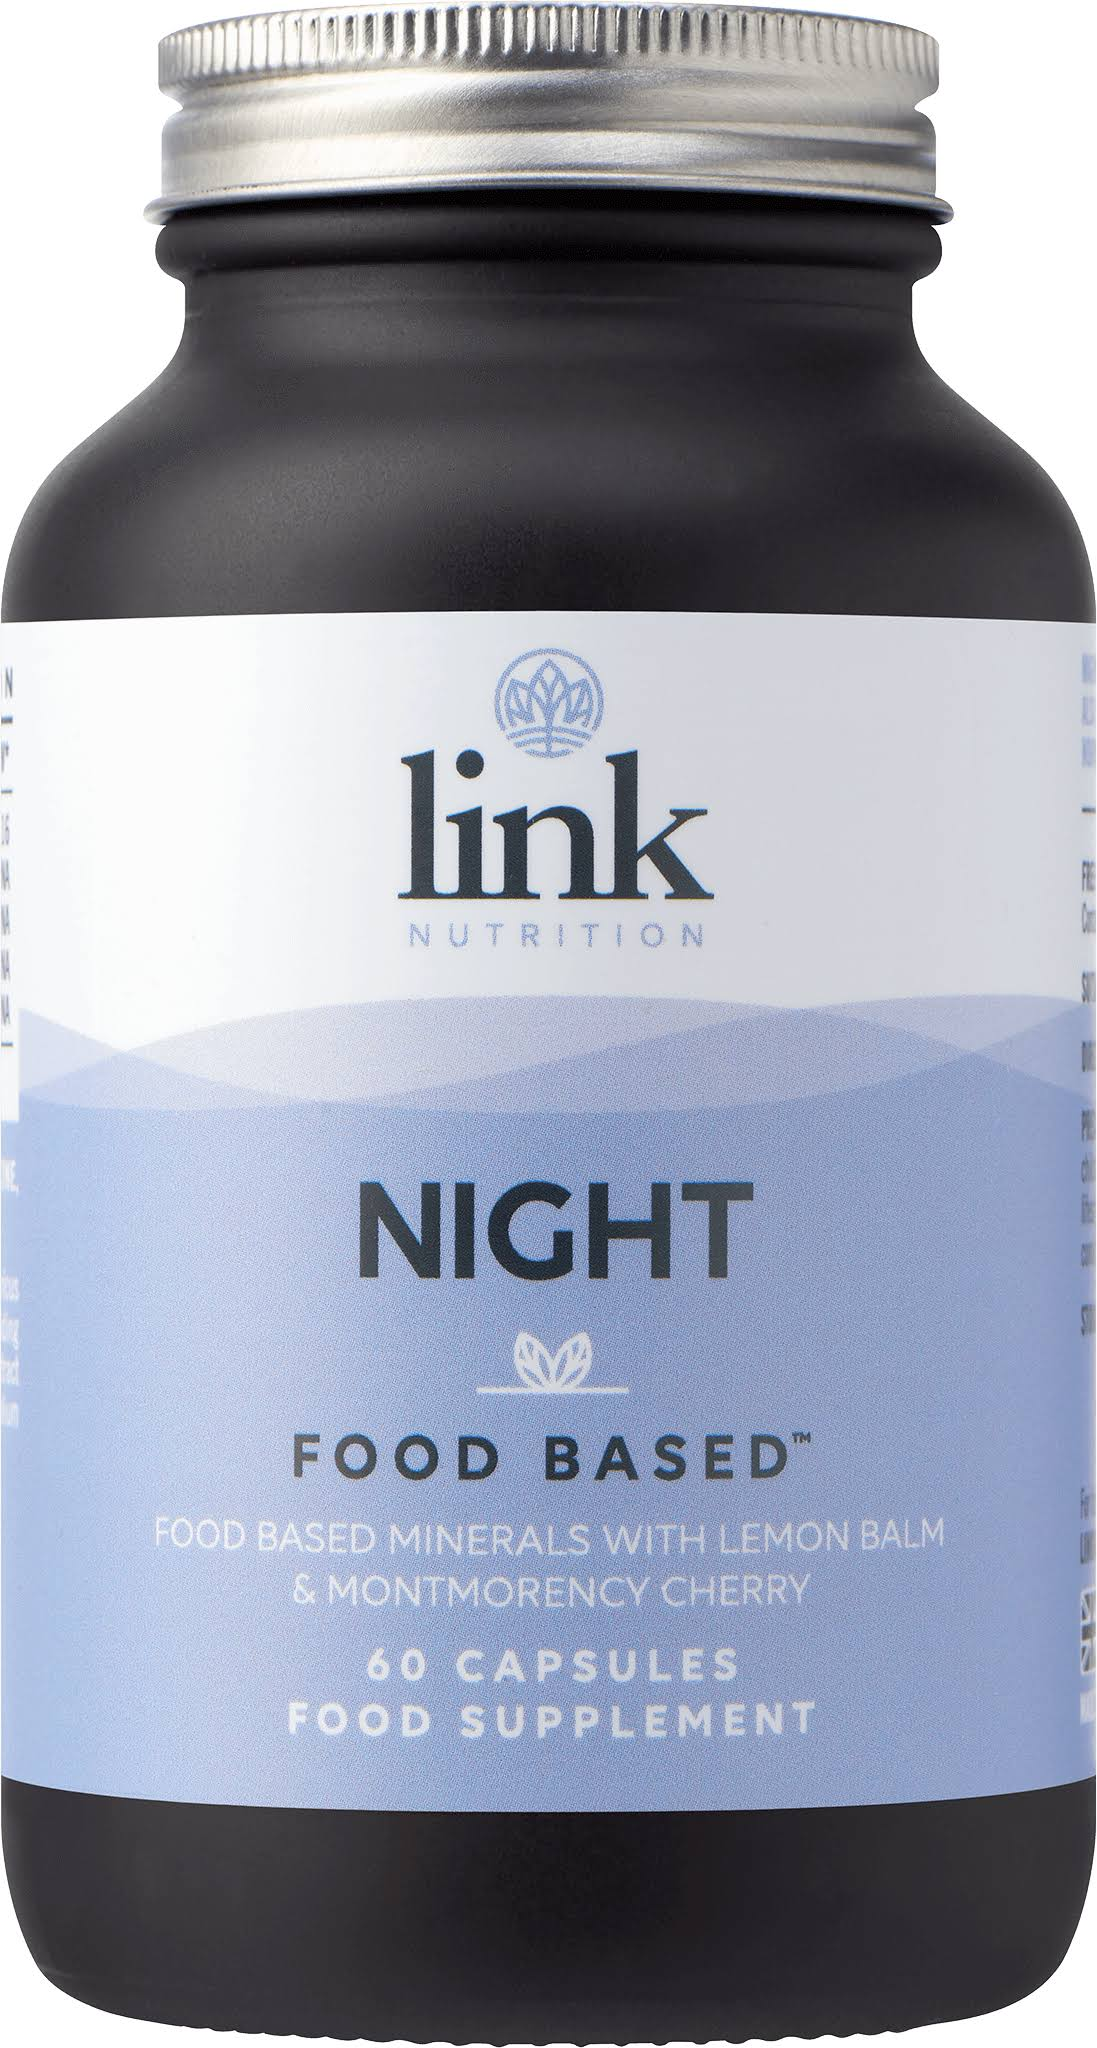 Link Nutrition - Night 60's